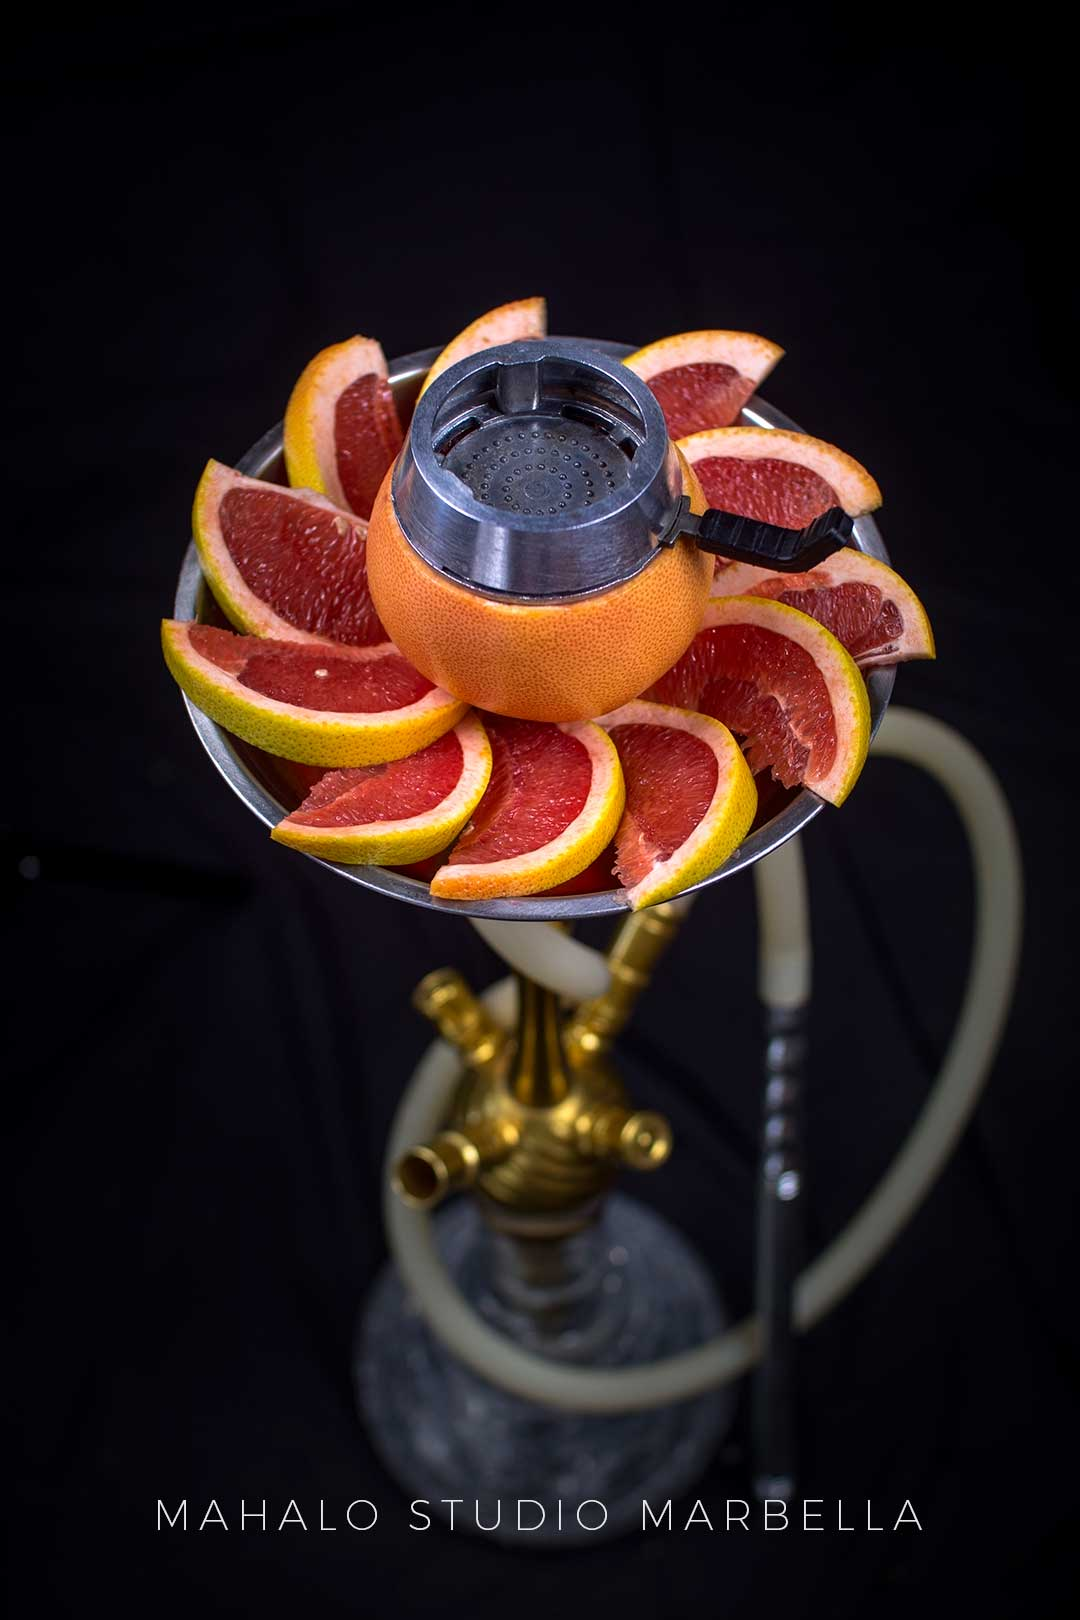 Grapefruit Hookah Fruit Bowl Dark Black Background